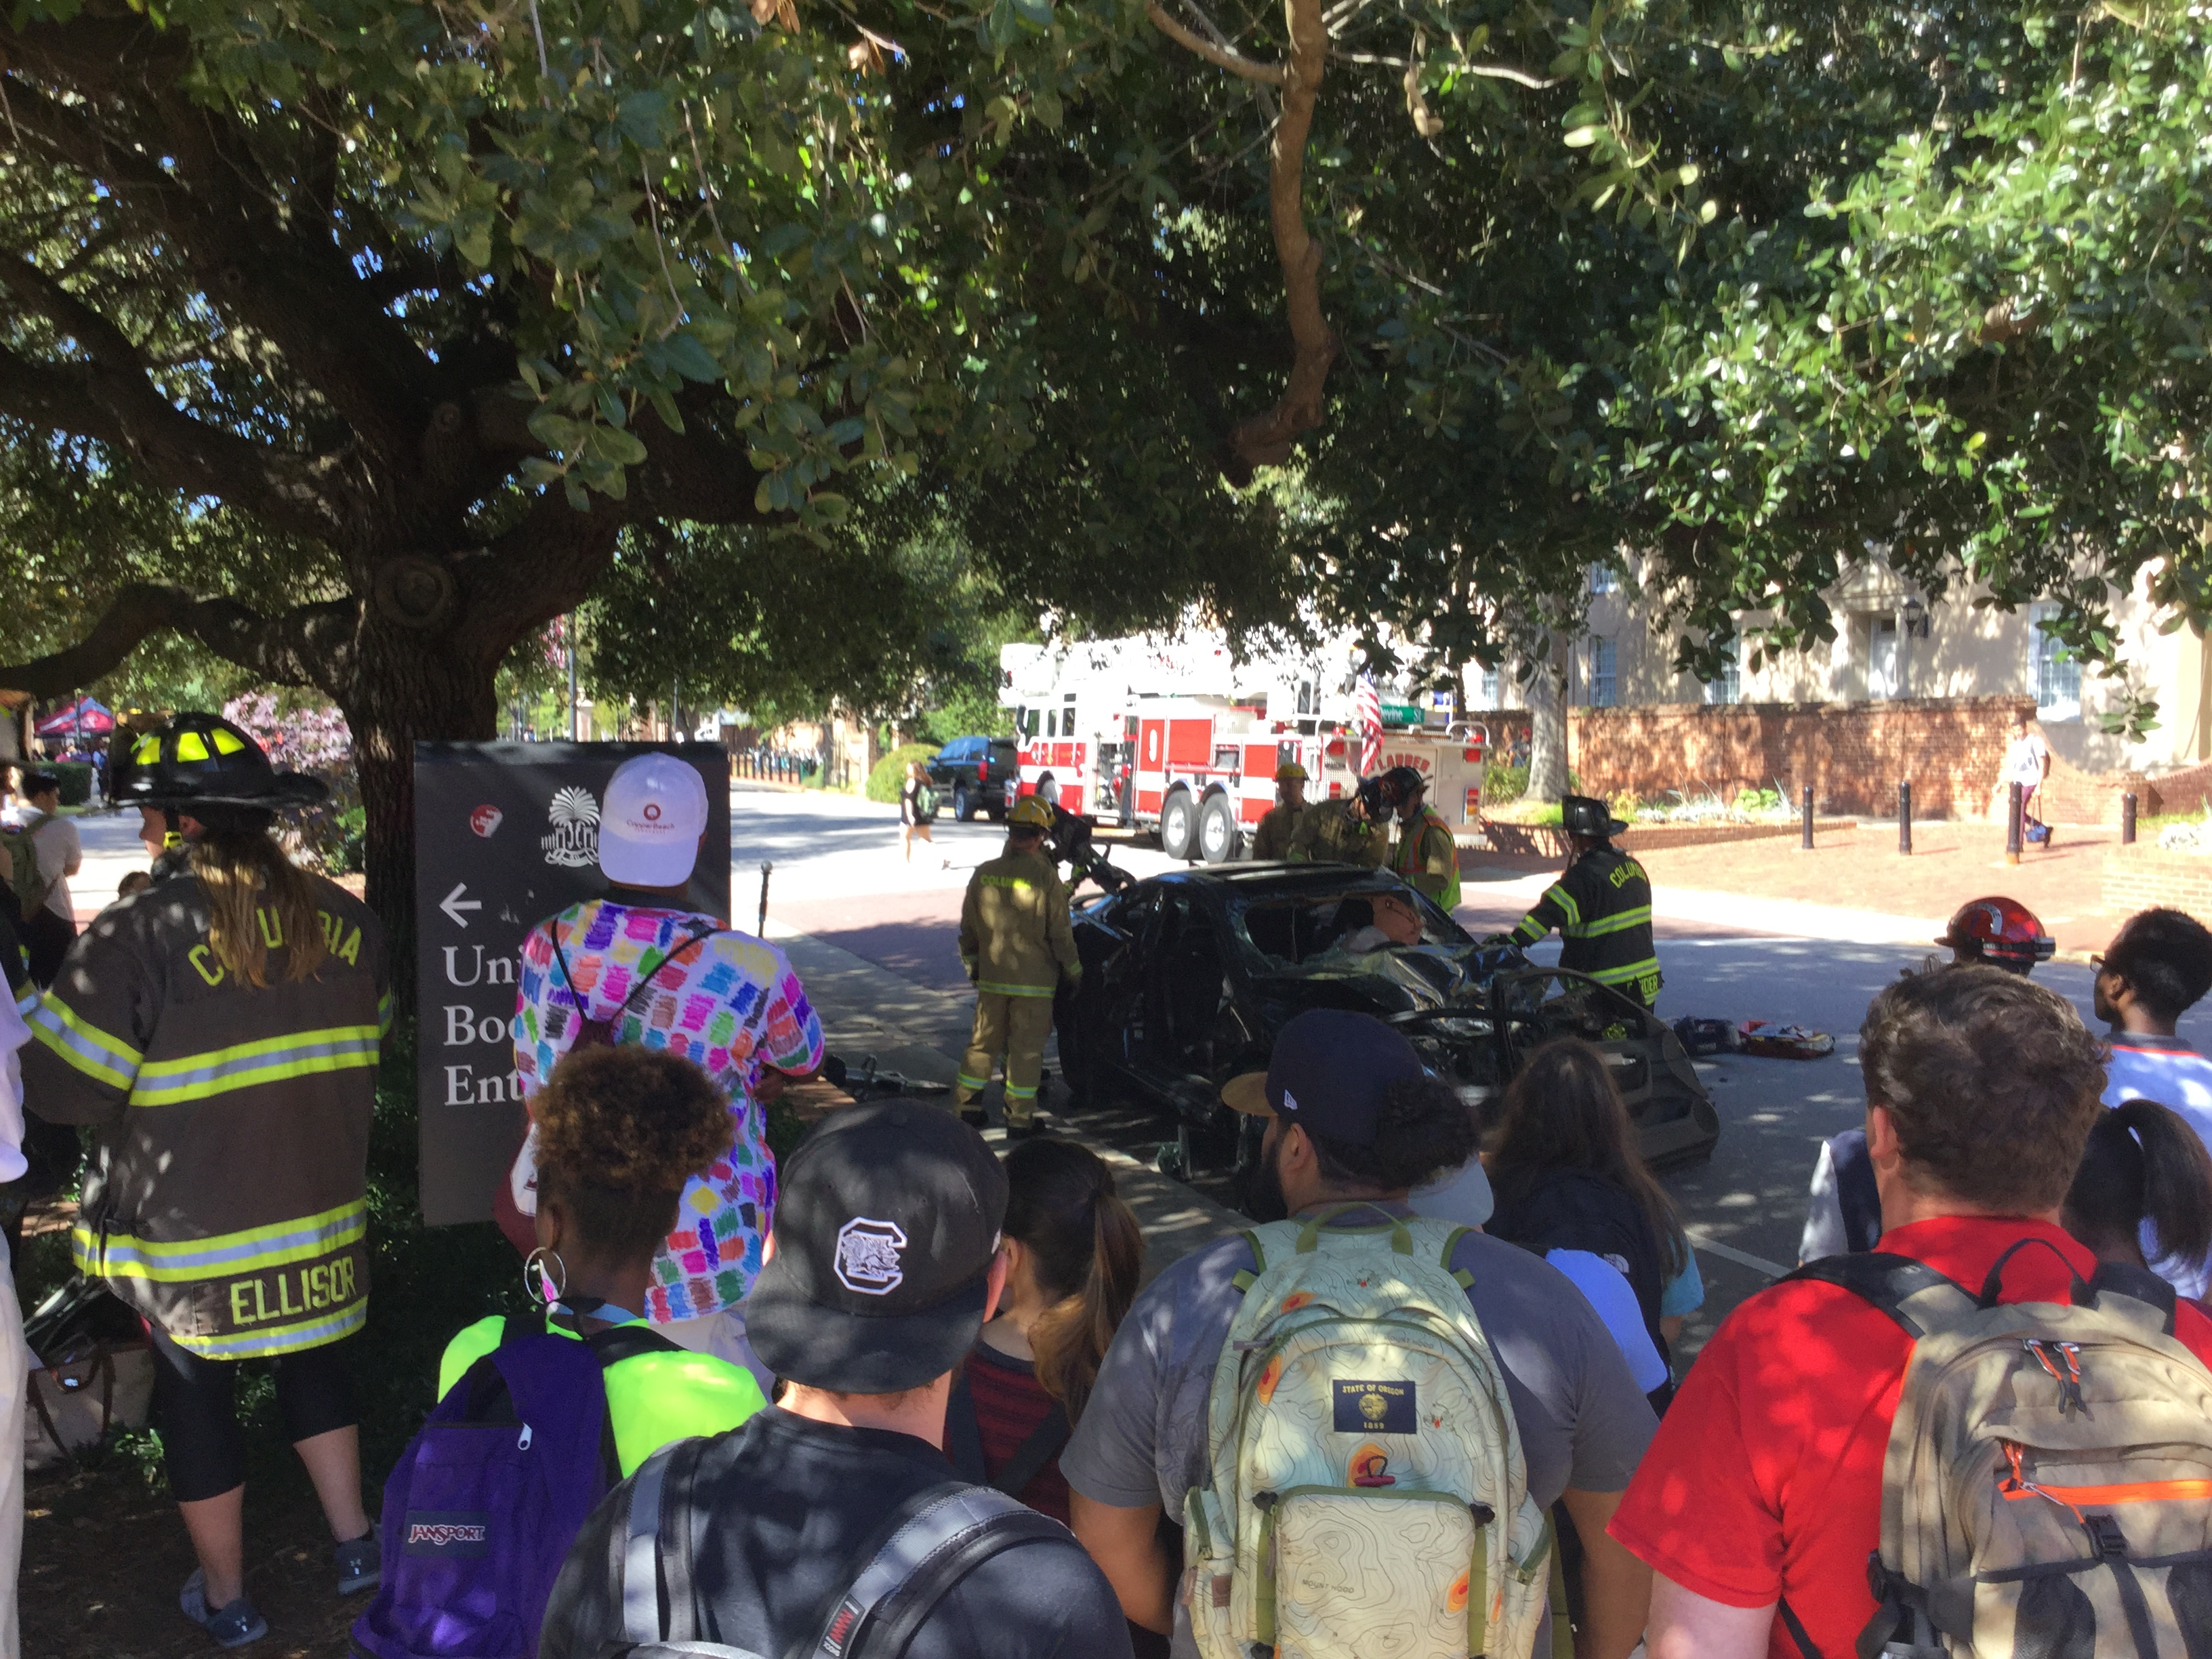 USC Safety Day auto extrication